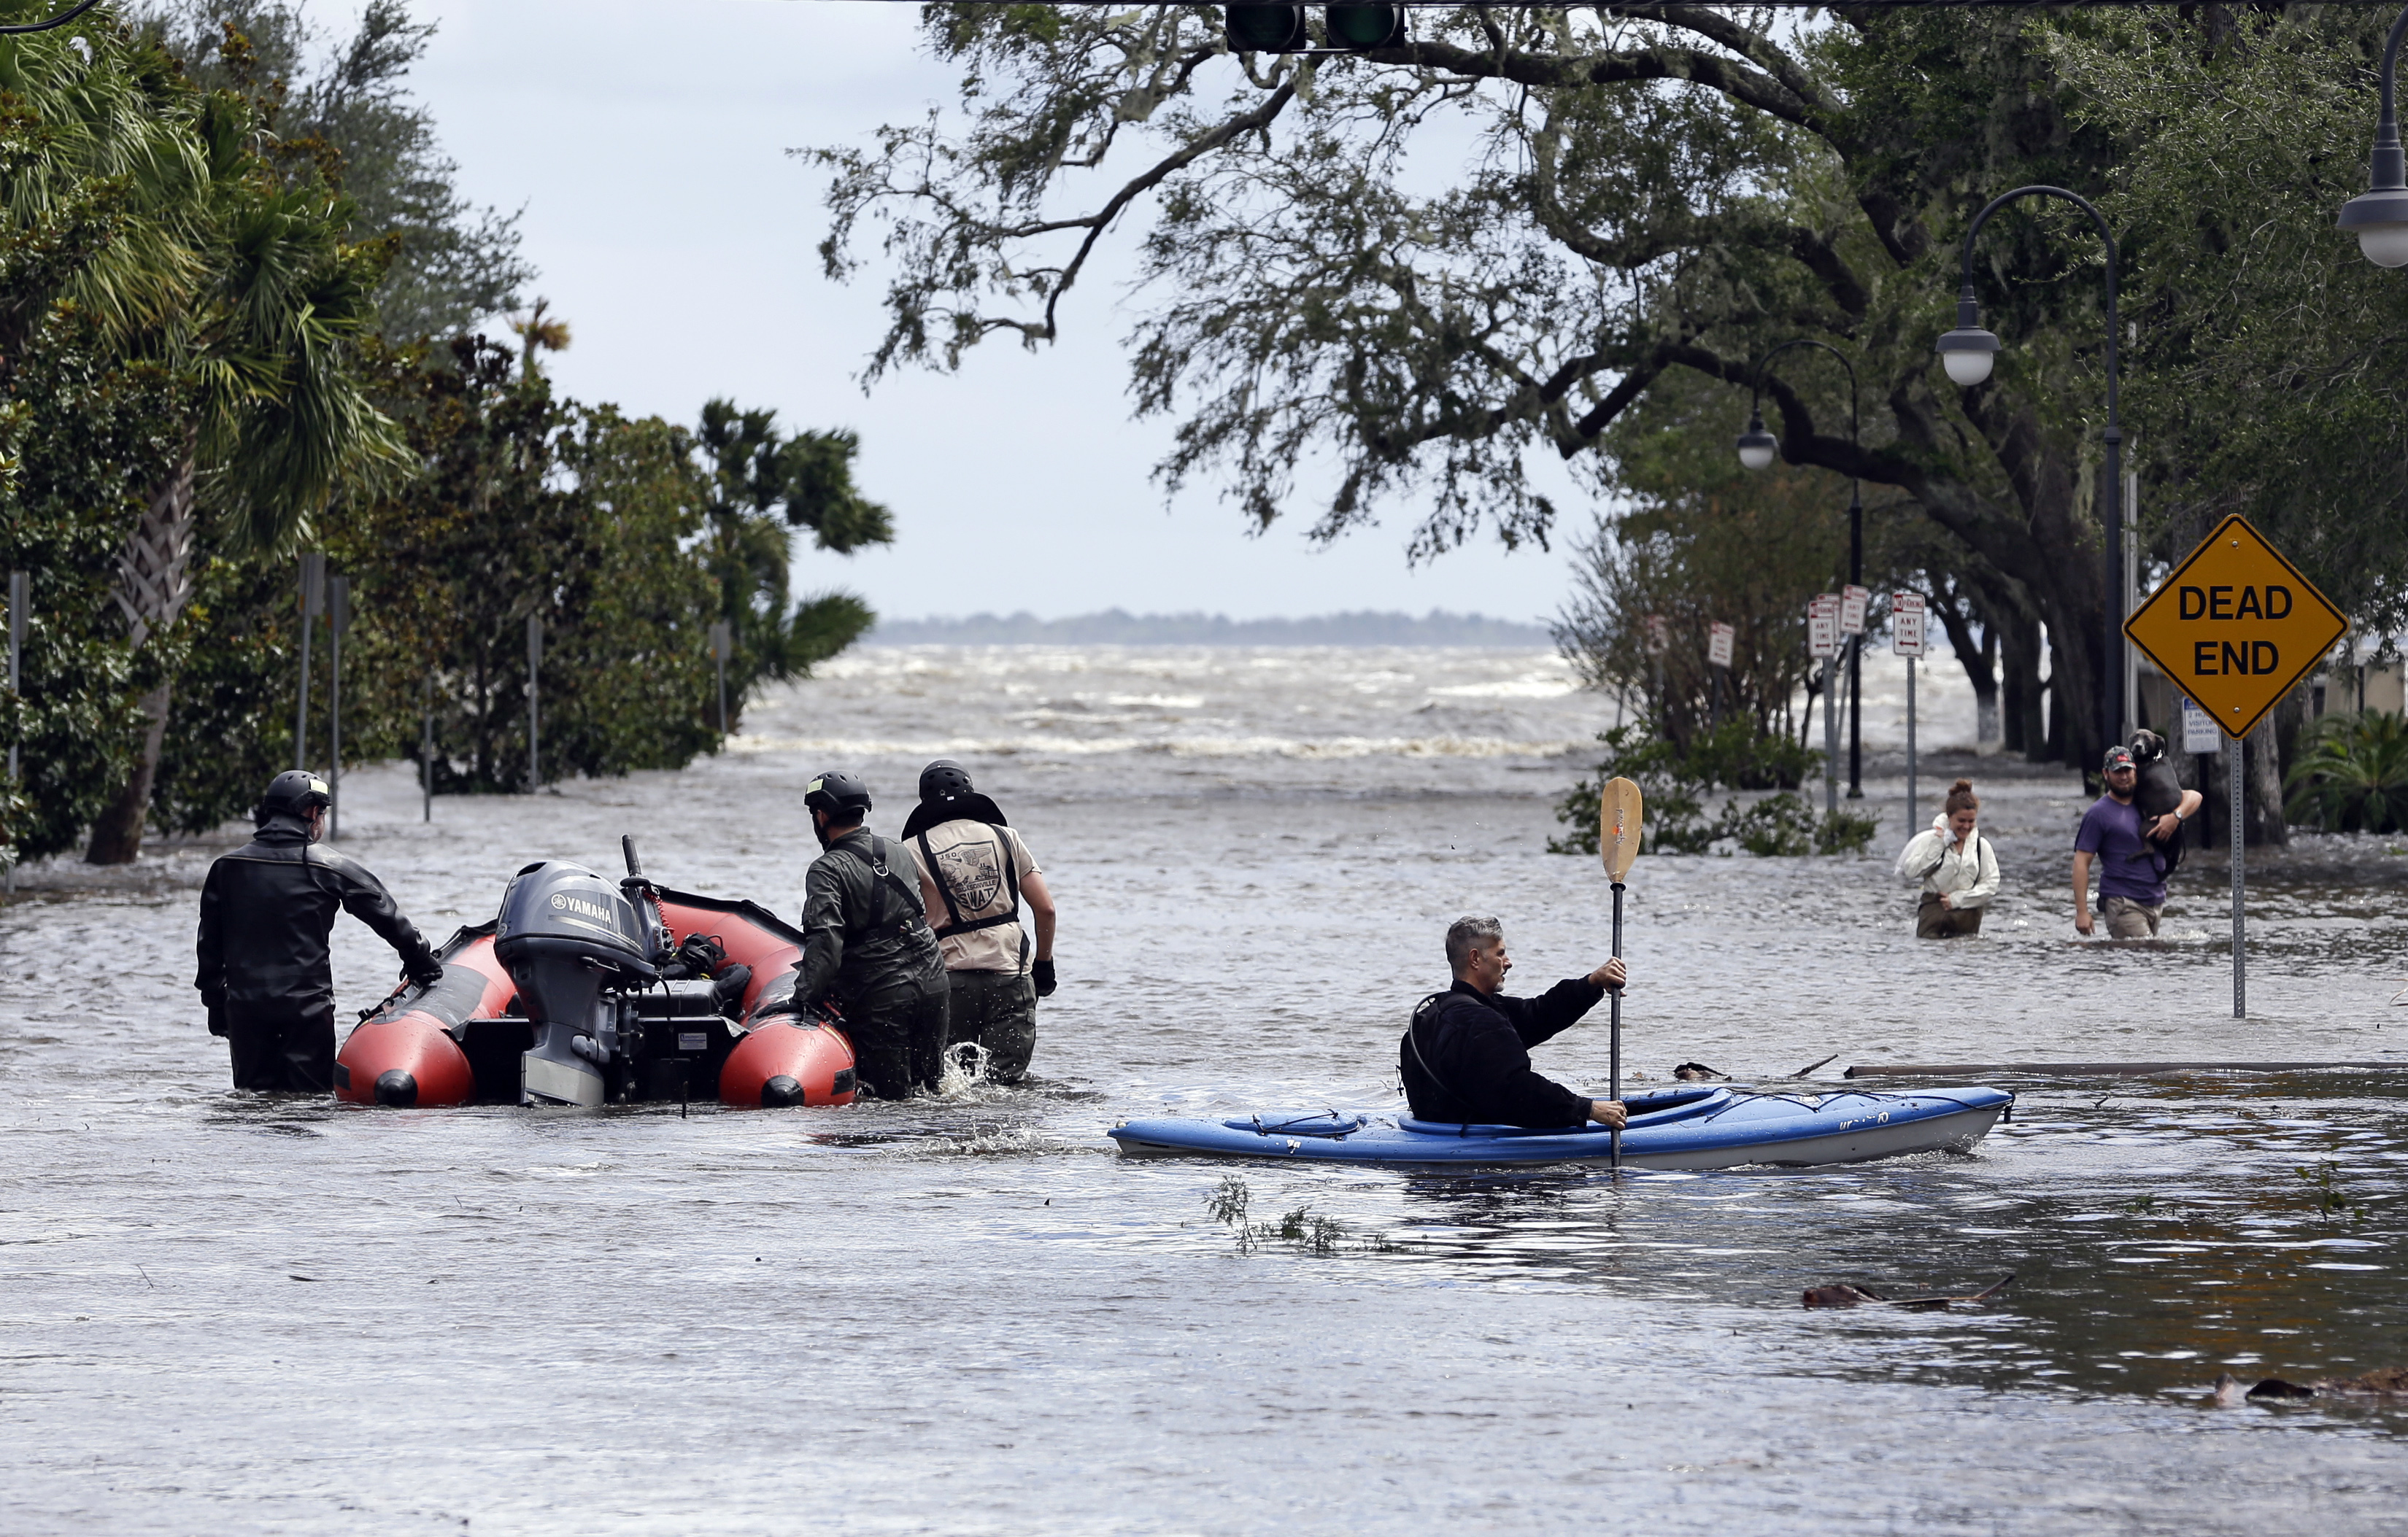 Hurricane Irma Florida Rescue workers, left, search a neighborhood for flood victims as a man on a kayak down the street after Hurricane Irma brought floodwaters to Jacksonville, Fla. Monday, Sept. 11, 2017. (AP Photo/John Raoux)